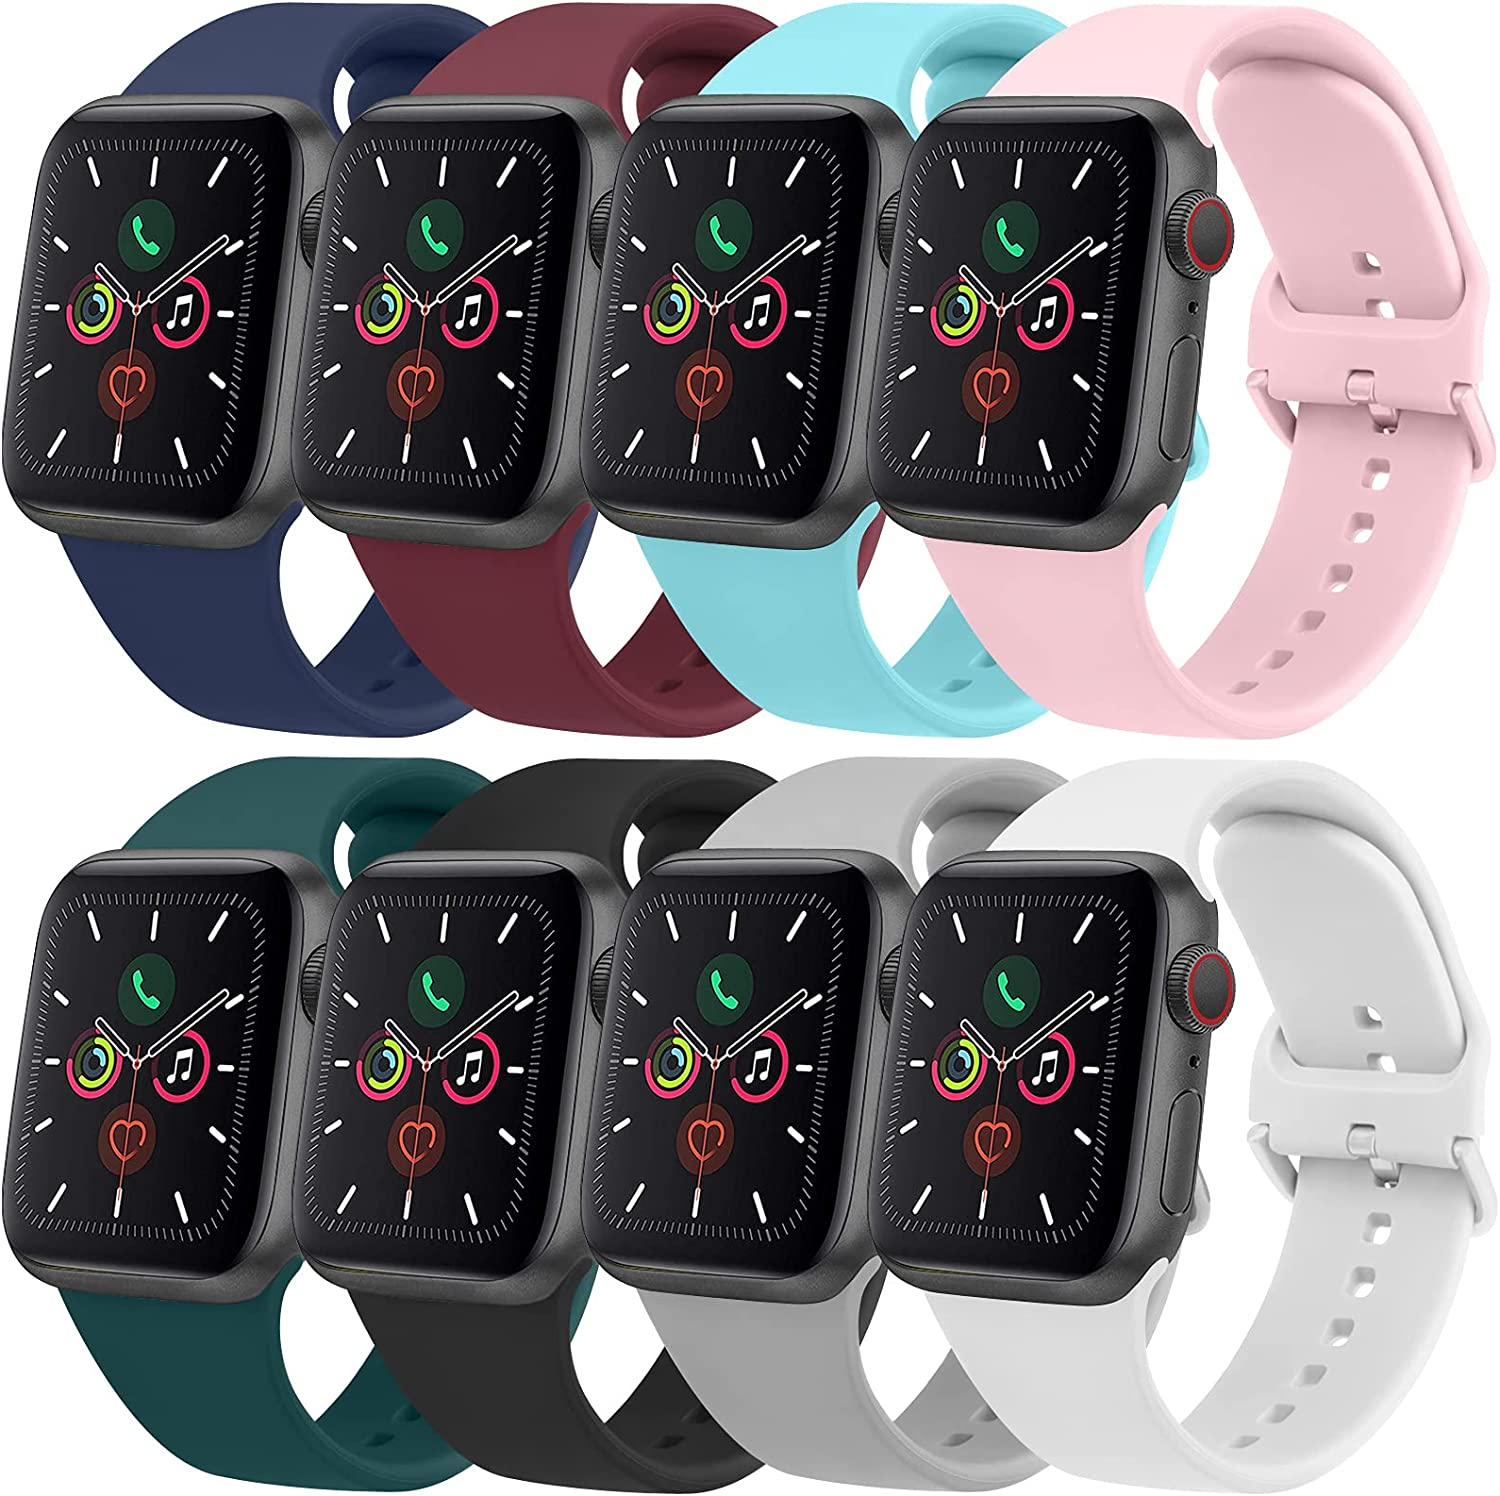 [8 PACK] Bands Compatible with Apple Watch Bands 44mm 42mm 40mm 38mm for Women Men, Replacement Strap with Classic Buckle for iWatch Series SE 6 5 4 3 2 1